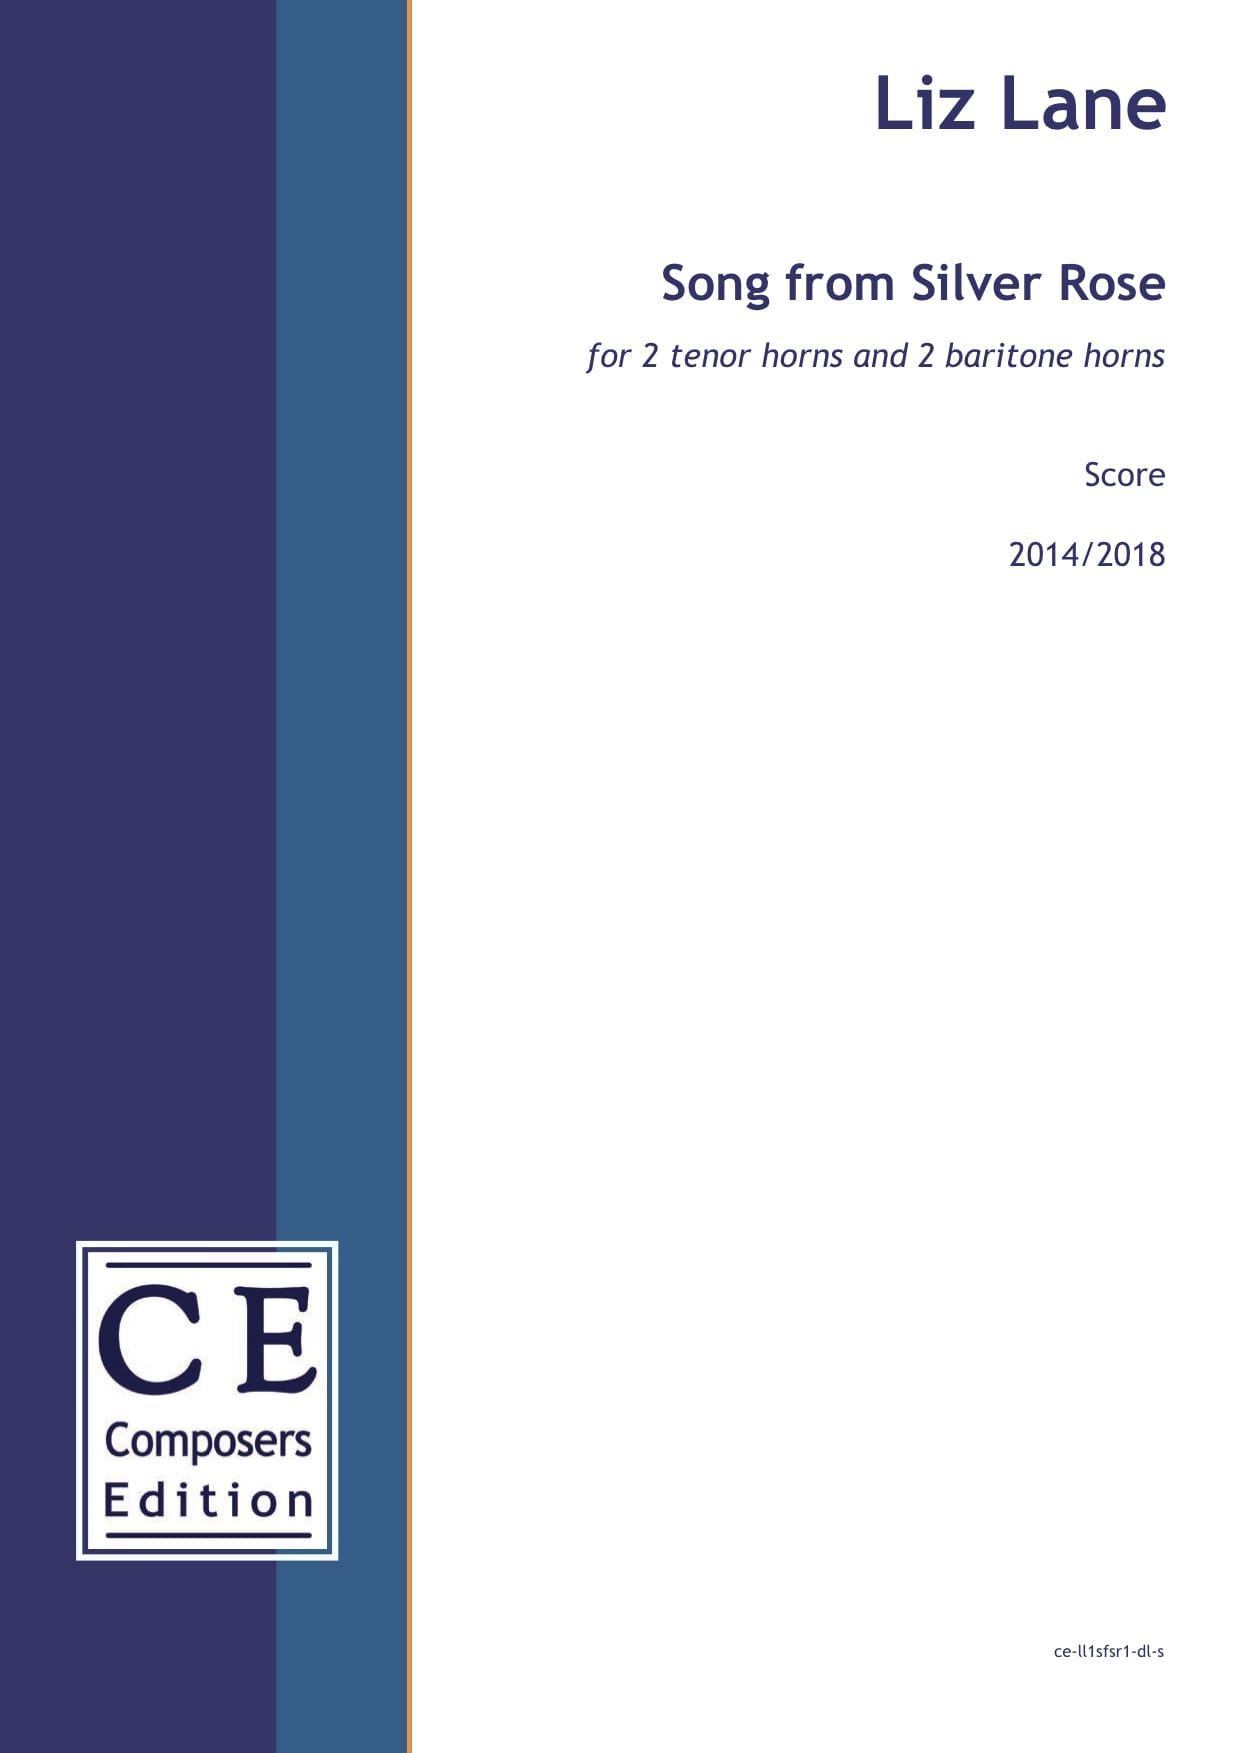 Liz Lane: Song from Silver Rose for 2 tenor horns and 2 baritone horns